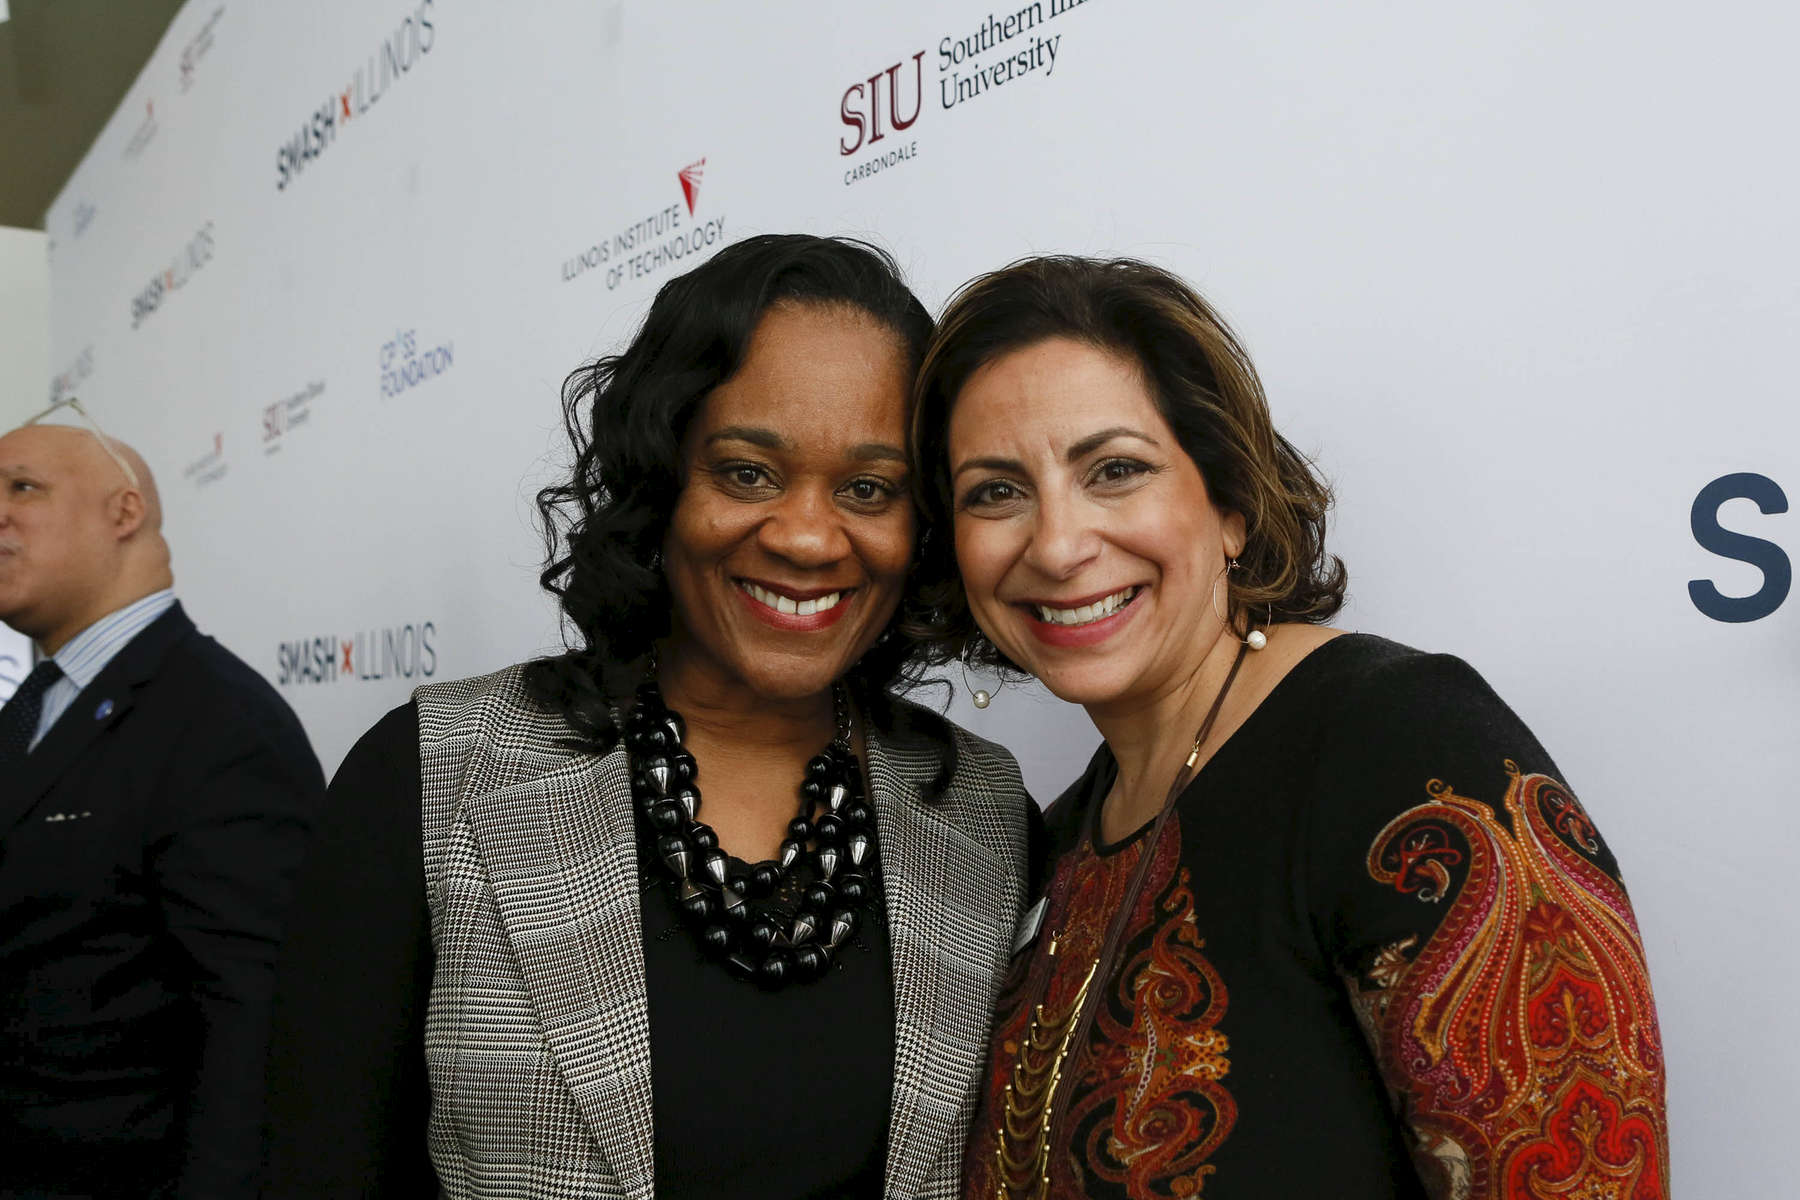 Honorable Kimberly A. Lightford (left), Senate Majority Leader & Joint-Chair, ILBC, poses for photos at the SMASH Illinois launch in Chicago, Illinois on January 24, 2019.